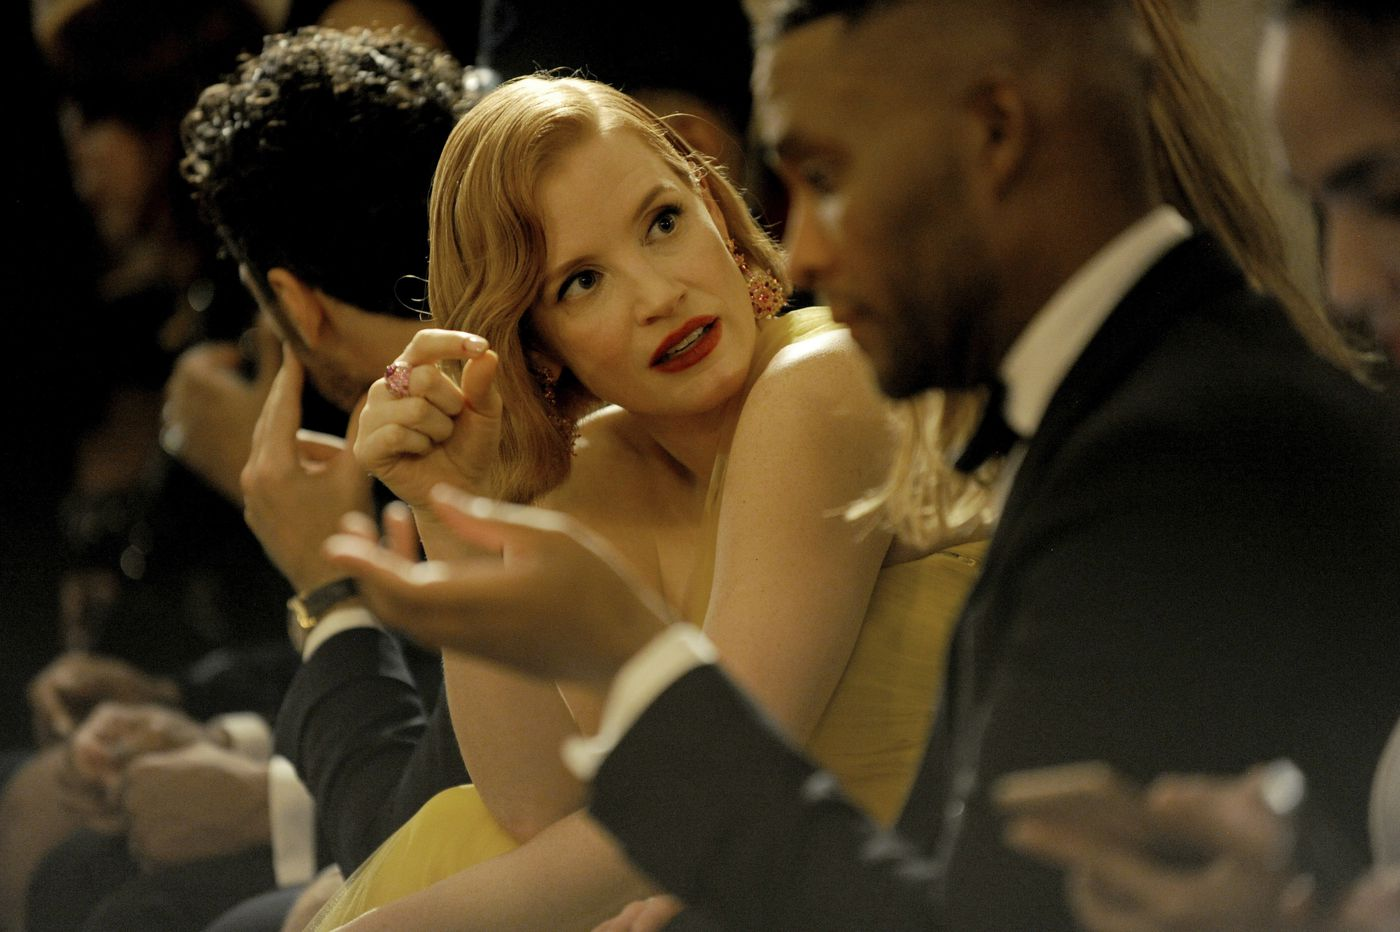 Jessica Chastain chats before the start of the Ralph Lauren 50th Anniversary Fashion Show during New York Fashion Week, Friday, Sept. 7, 2018. (AP Photo/Diane Bondareff)